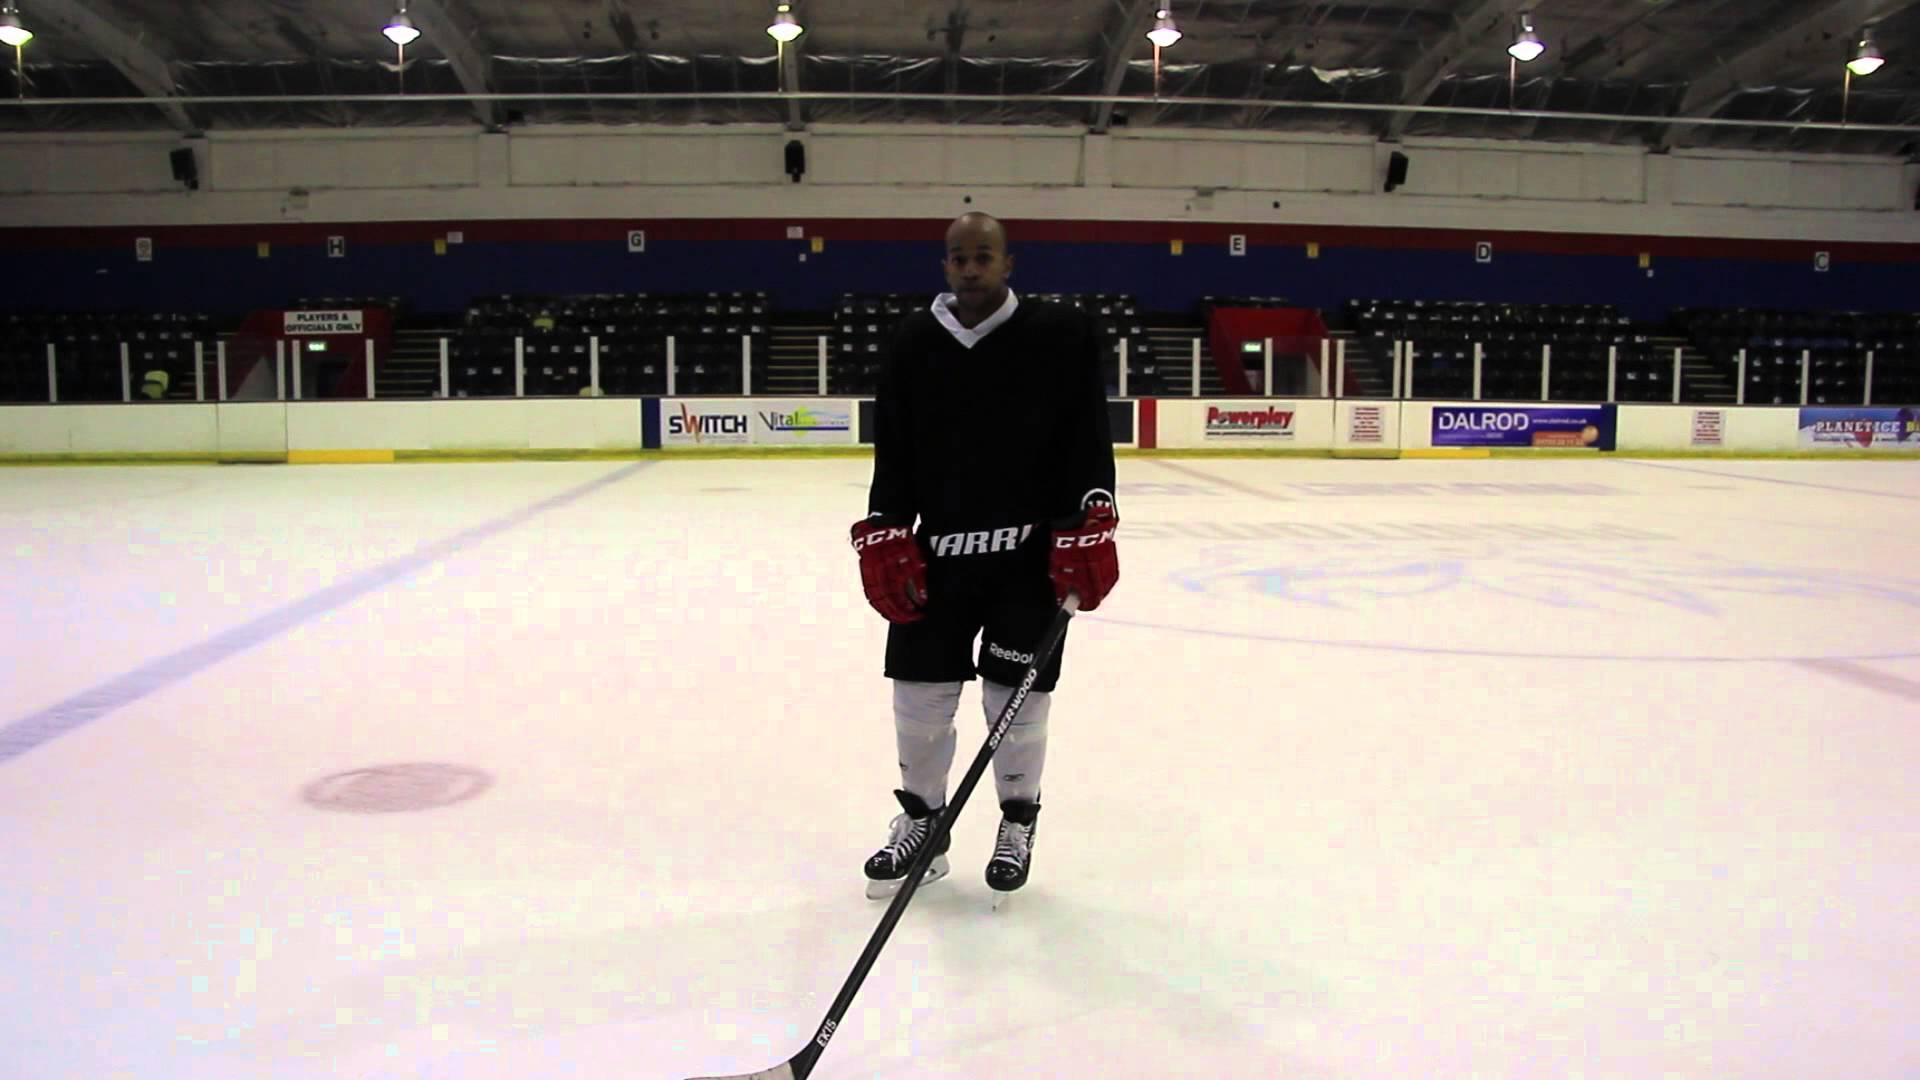 What Skills You Need To Know Before Learning How To Play Ice Hockey – Joining A Rec Team